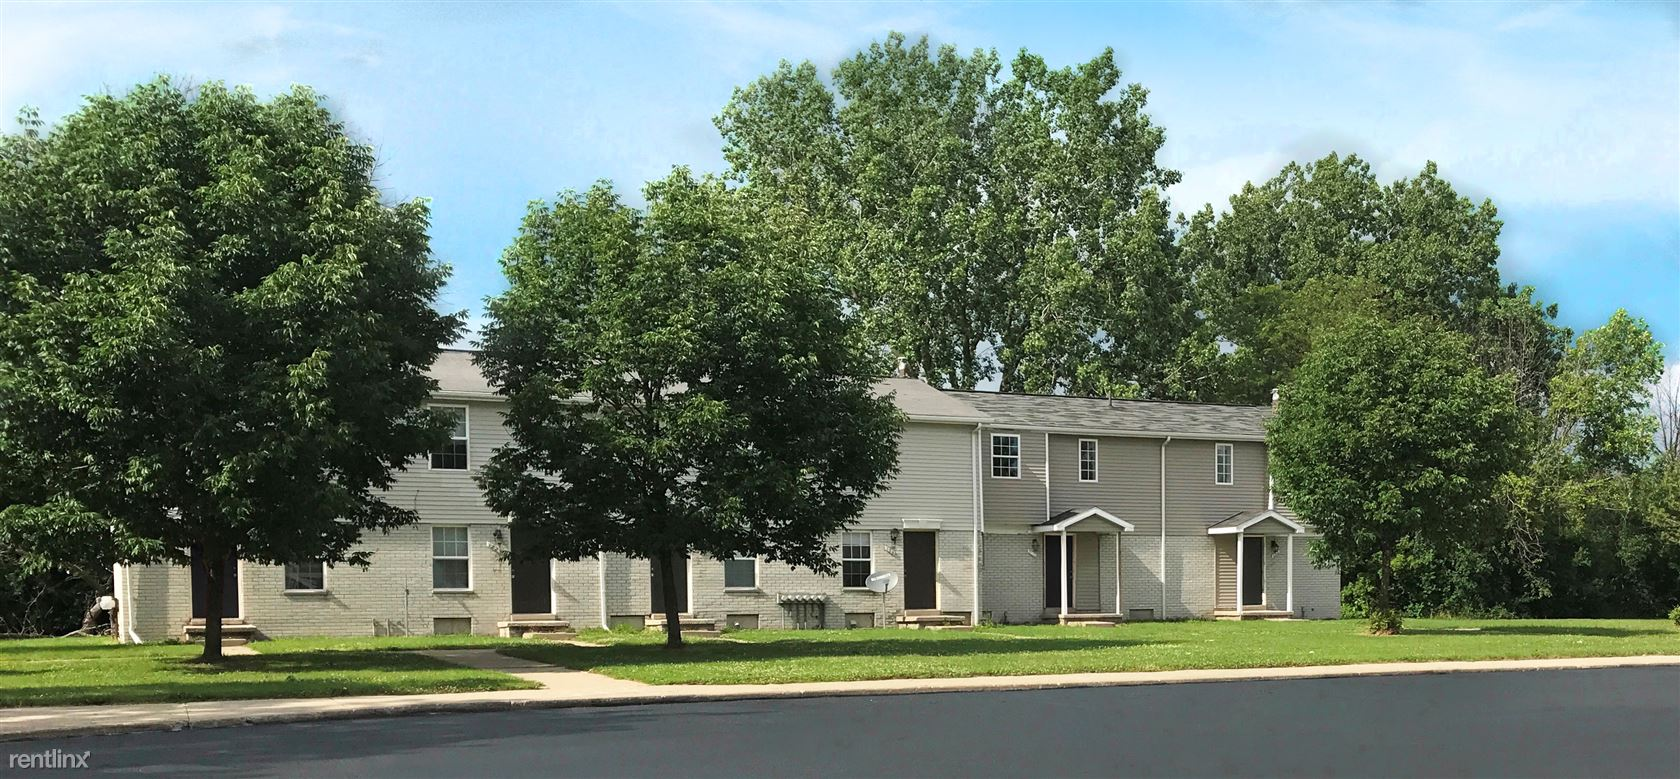 Country Way Townhomes